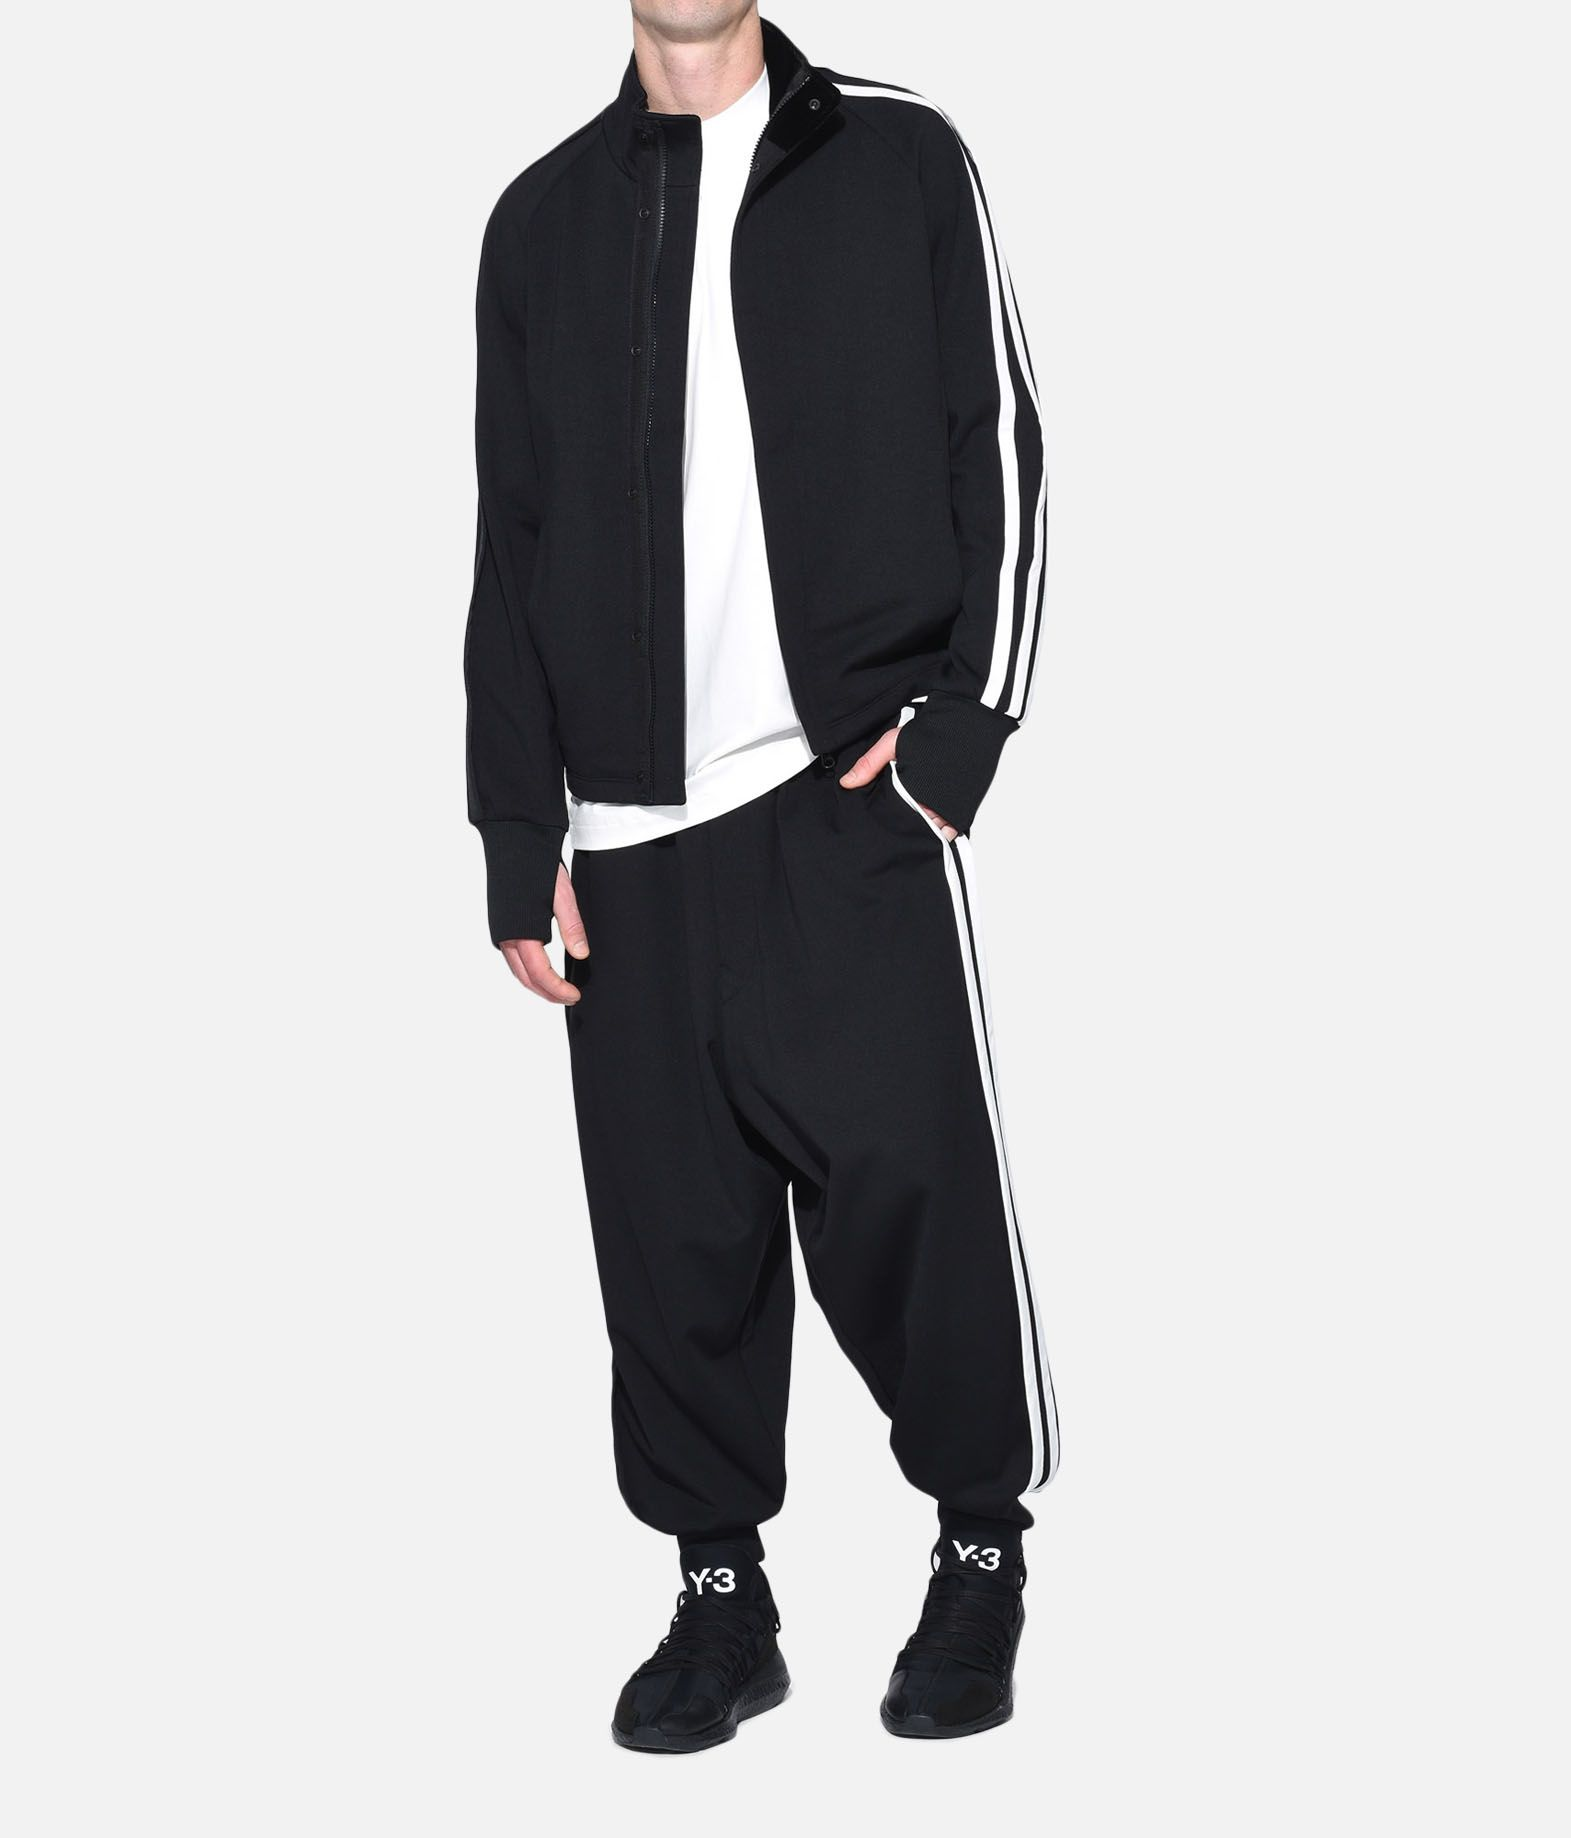 Y-3 Y-3 3-Stripes Selvedge Matte Track Pants Track pant Man a